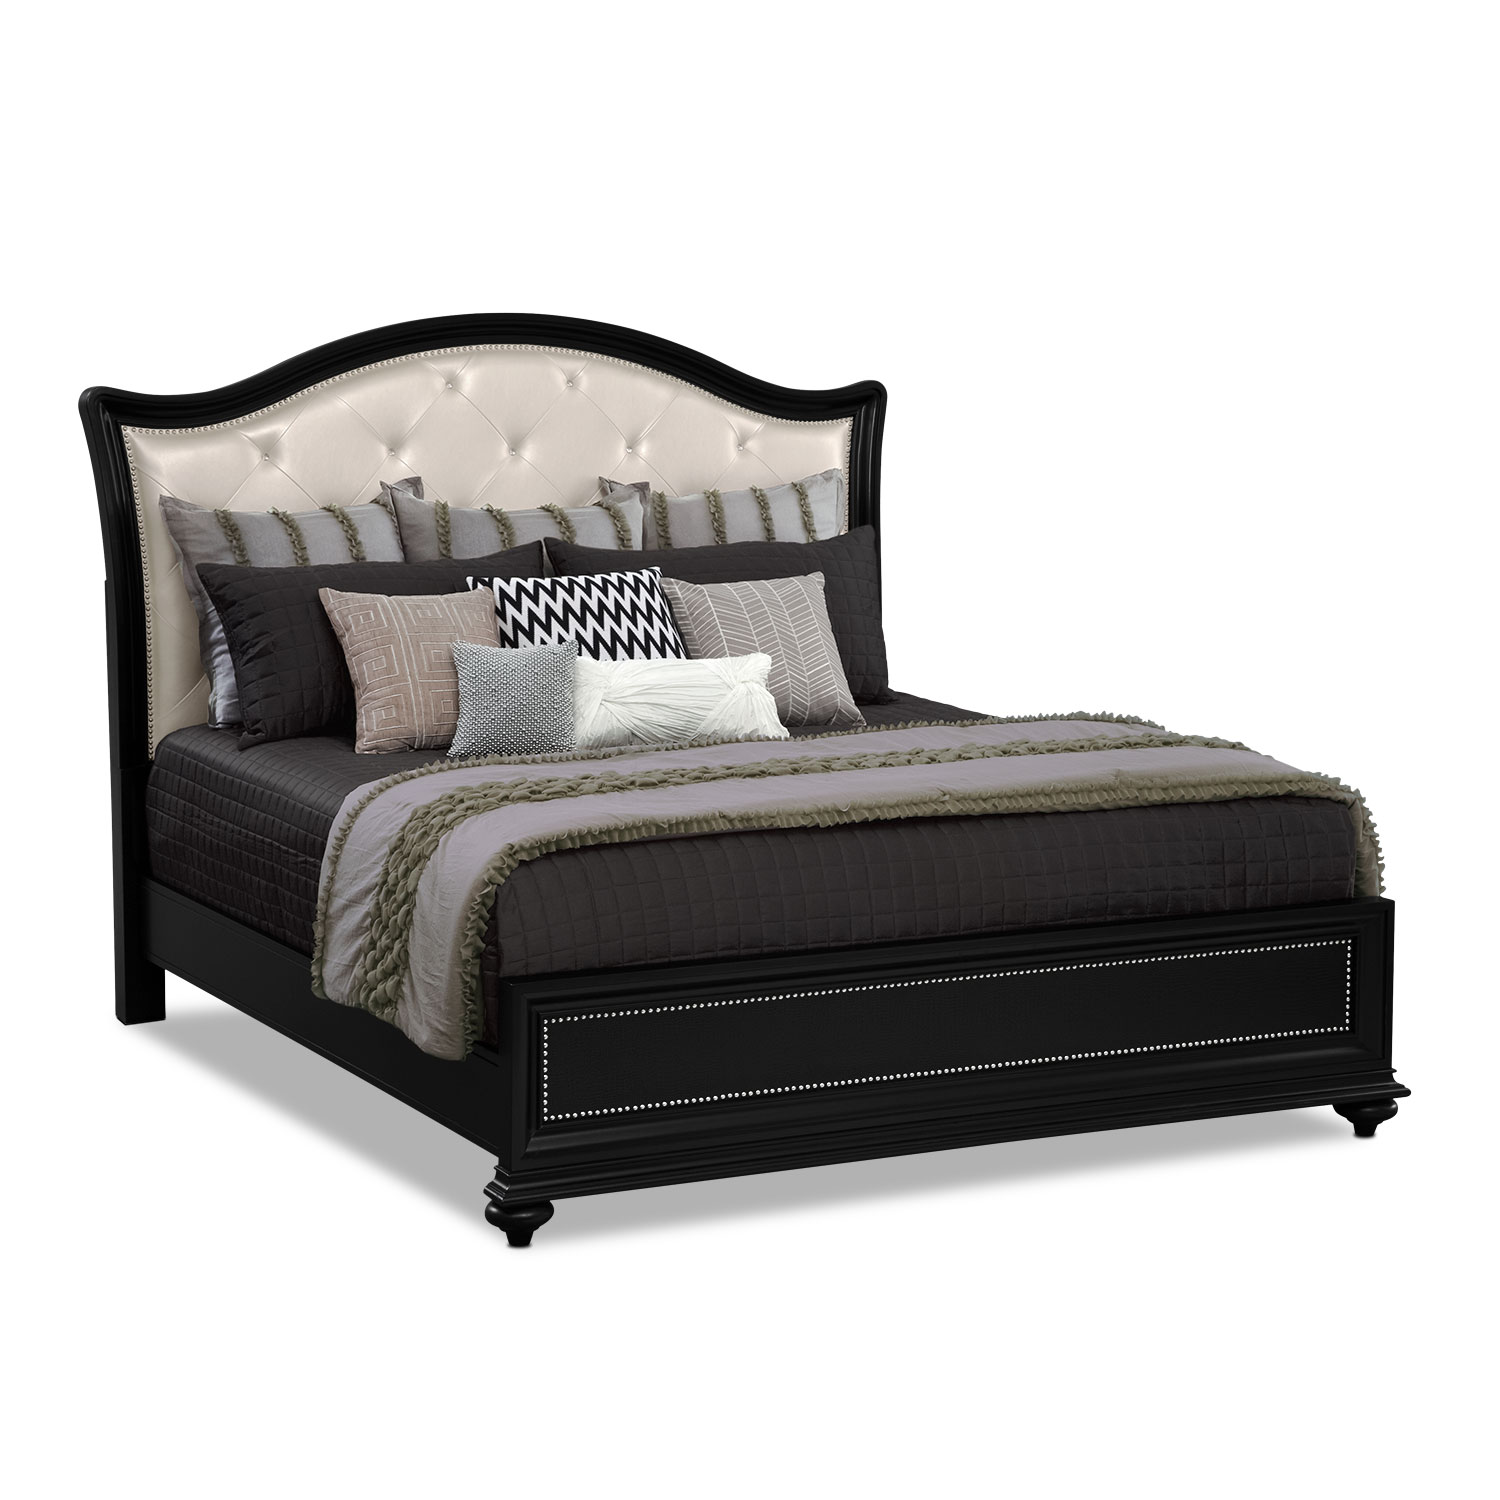 Marilyn King Bed